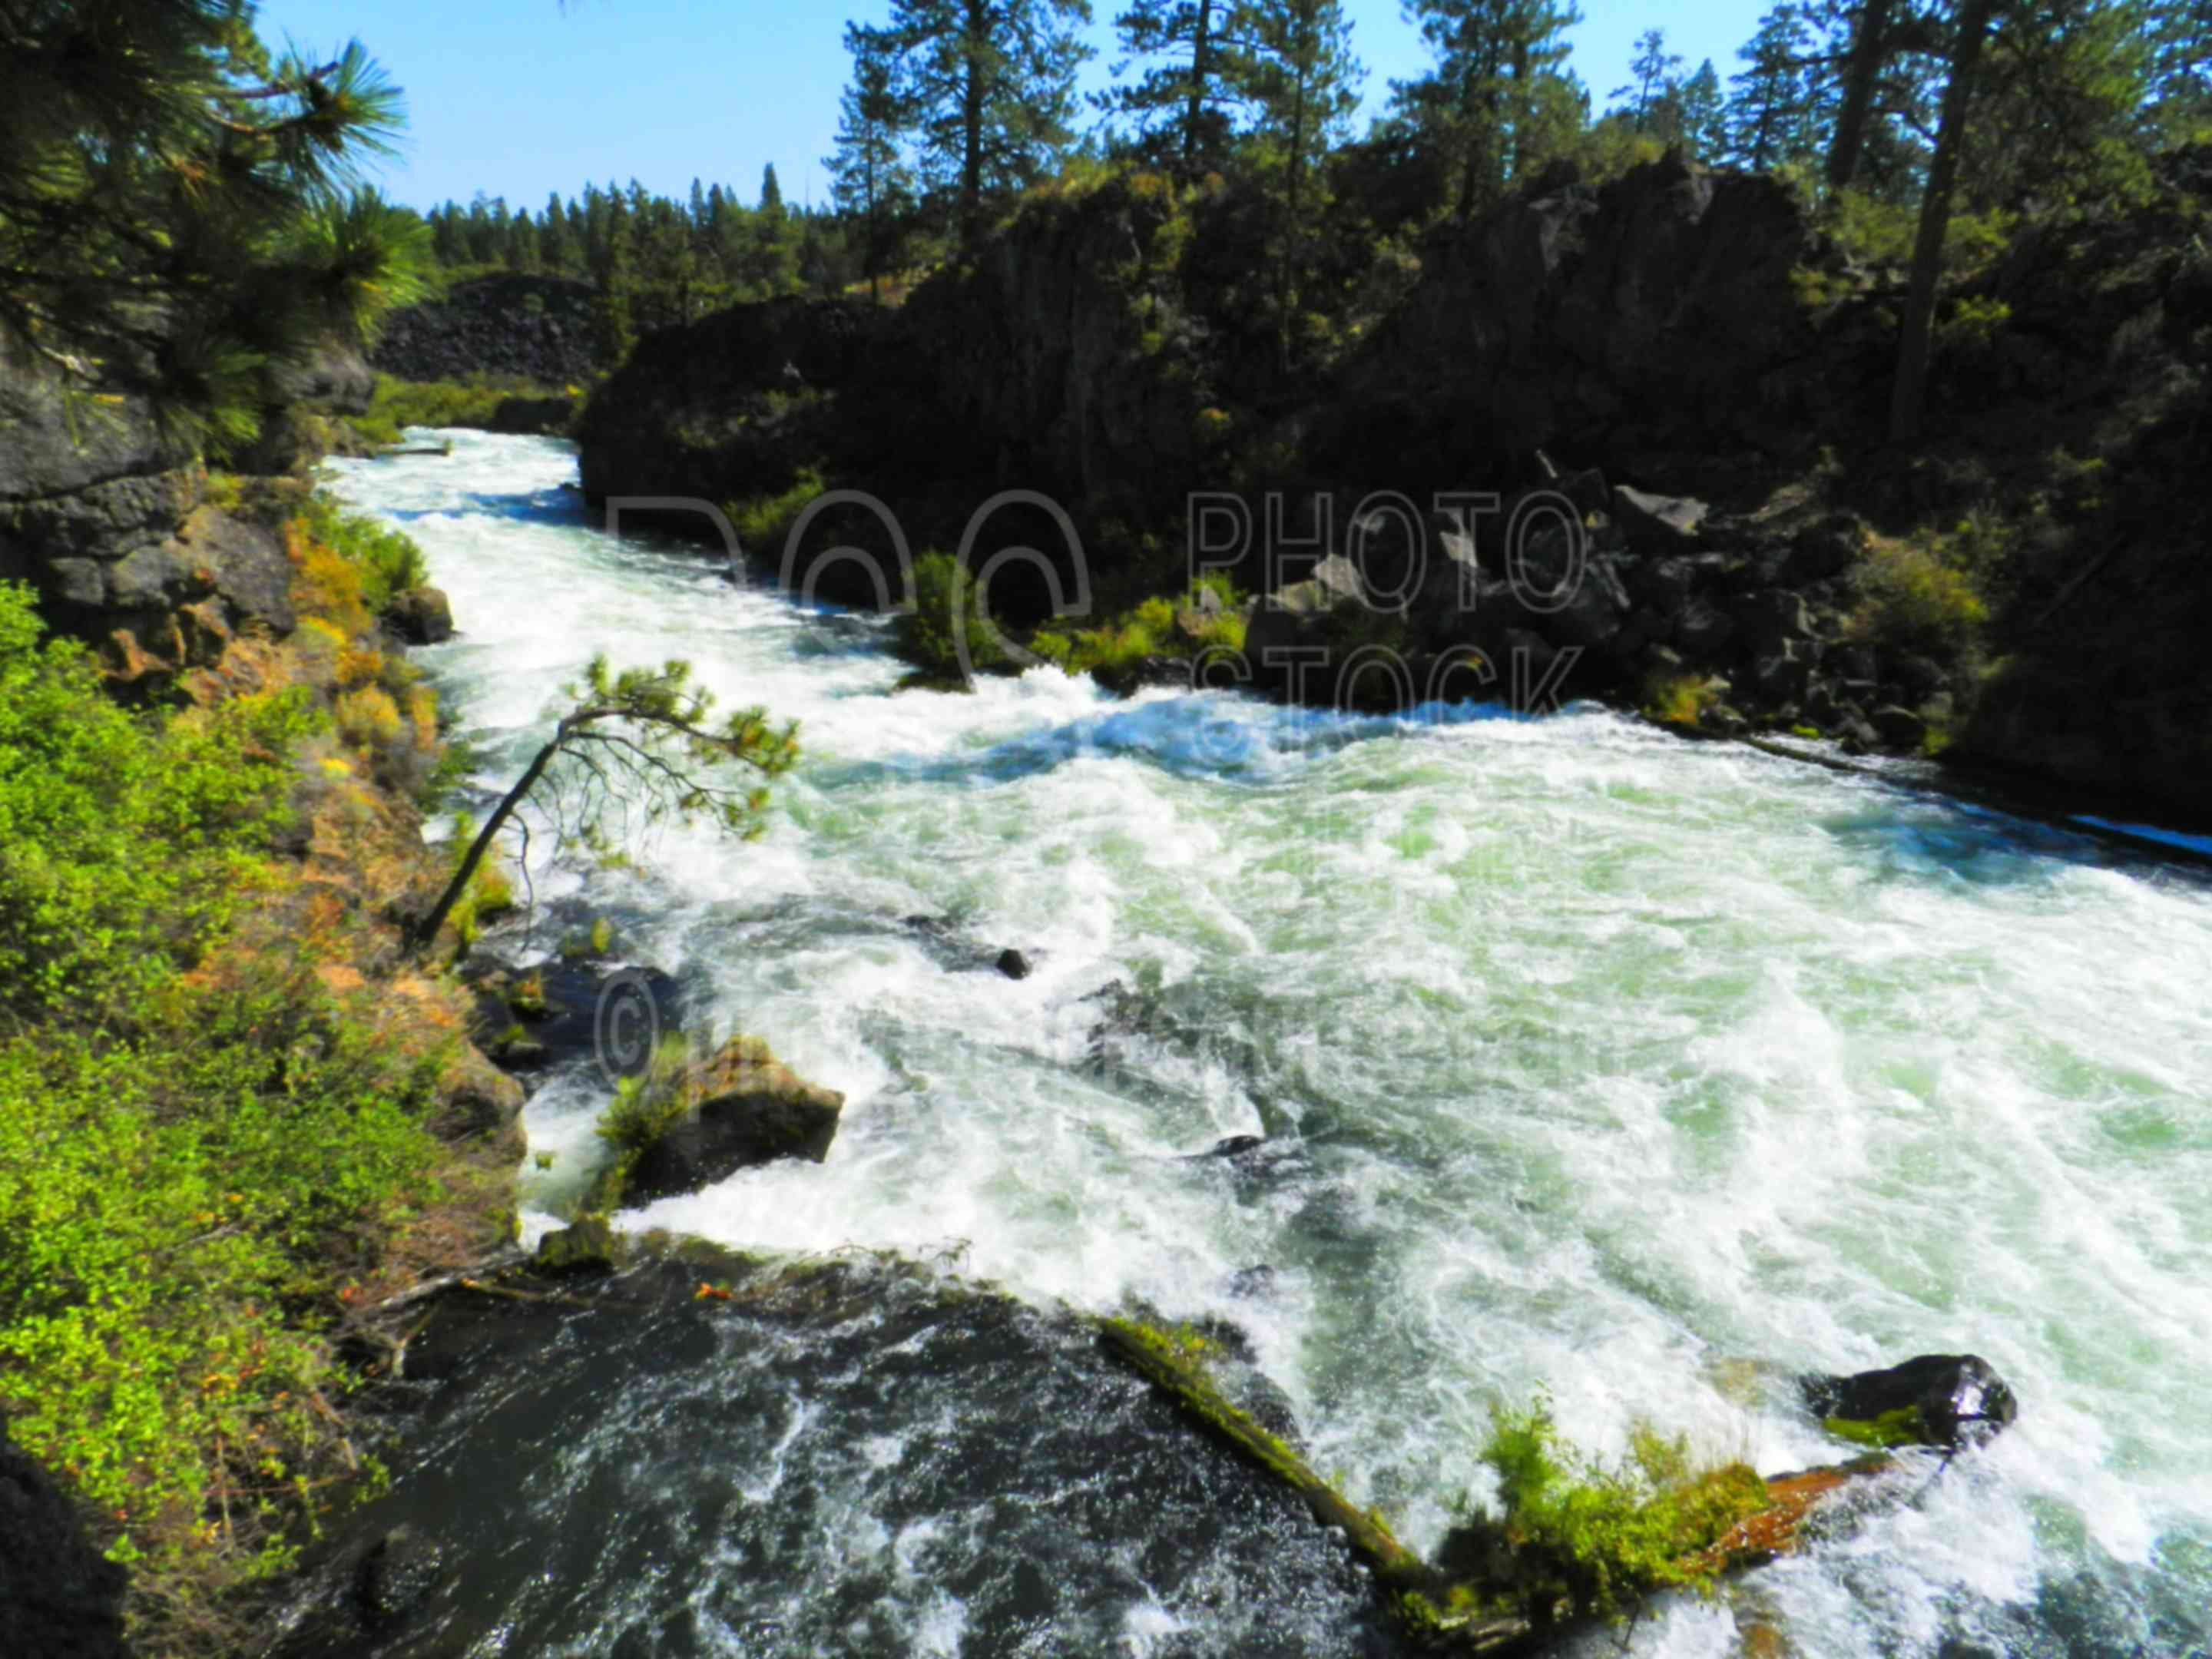 Dillon Falls,river,water,rapids,waterfall